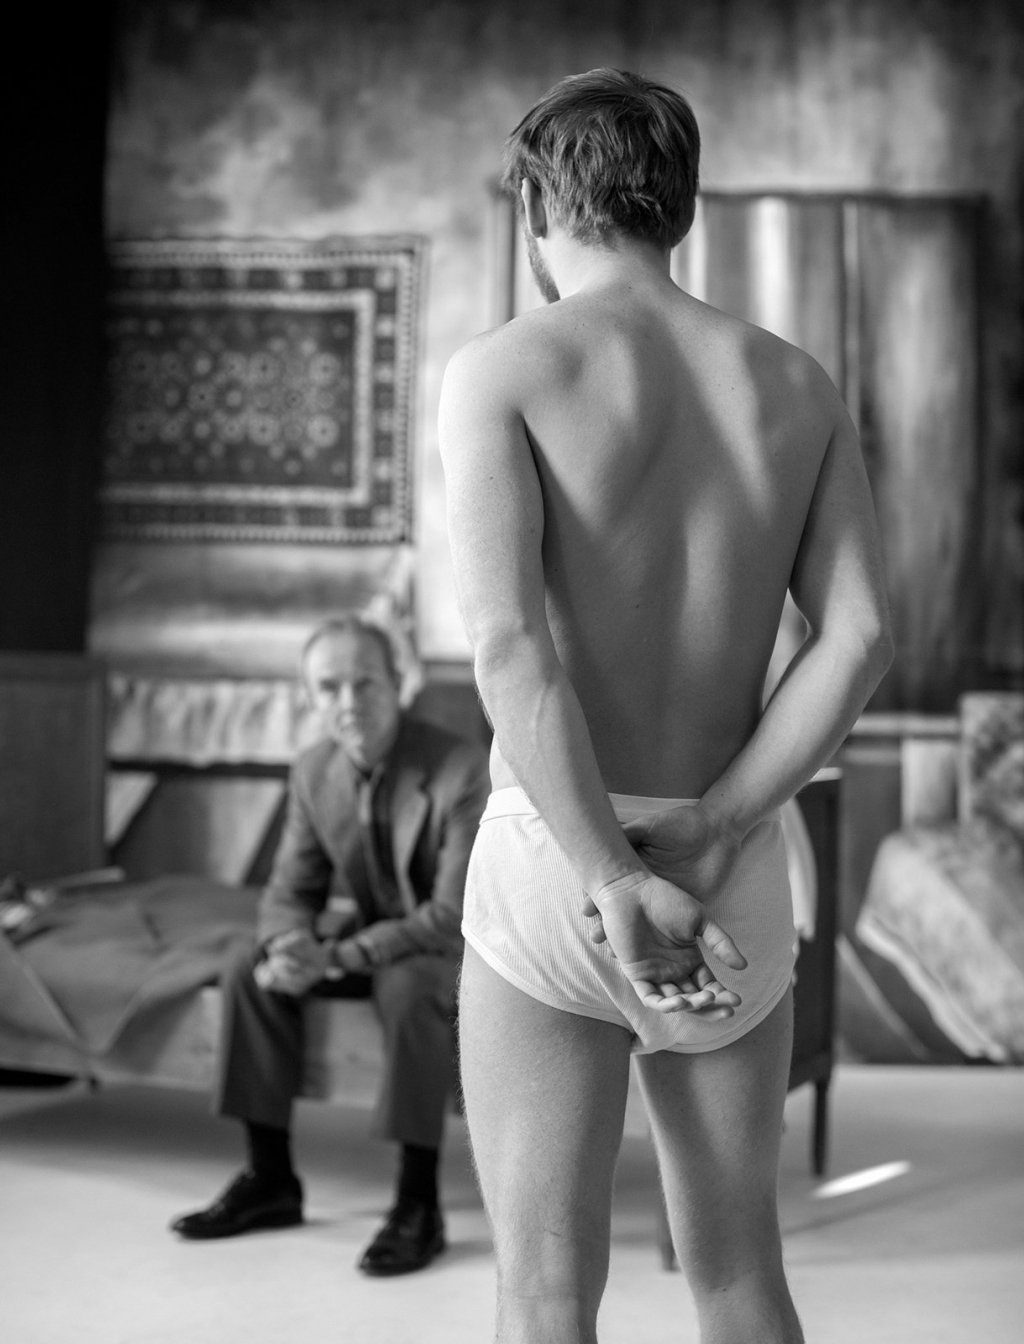 a young man stands half naked in front of a dressed old man